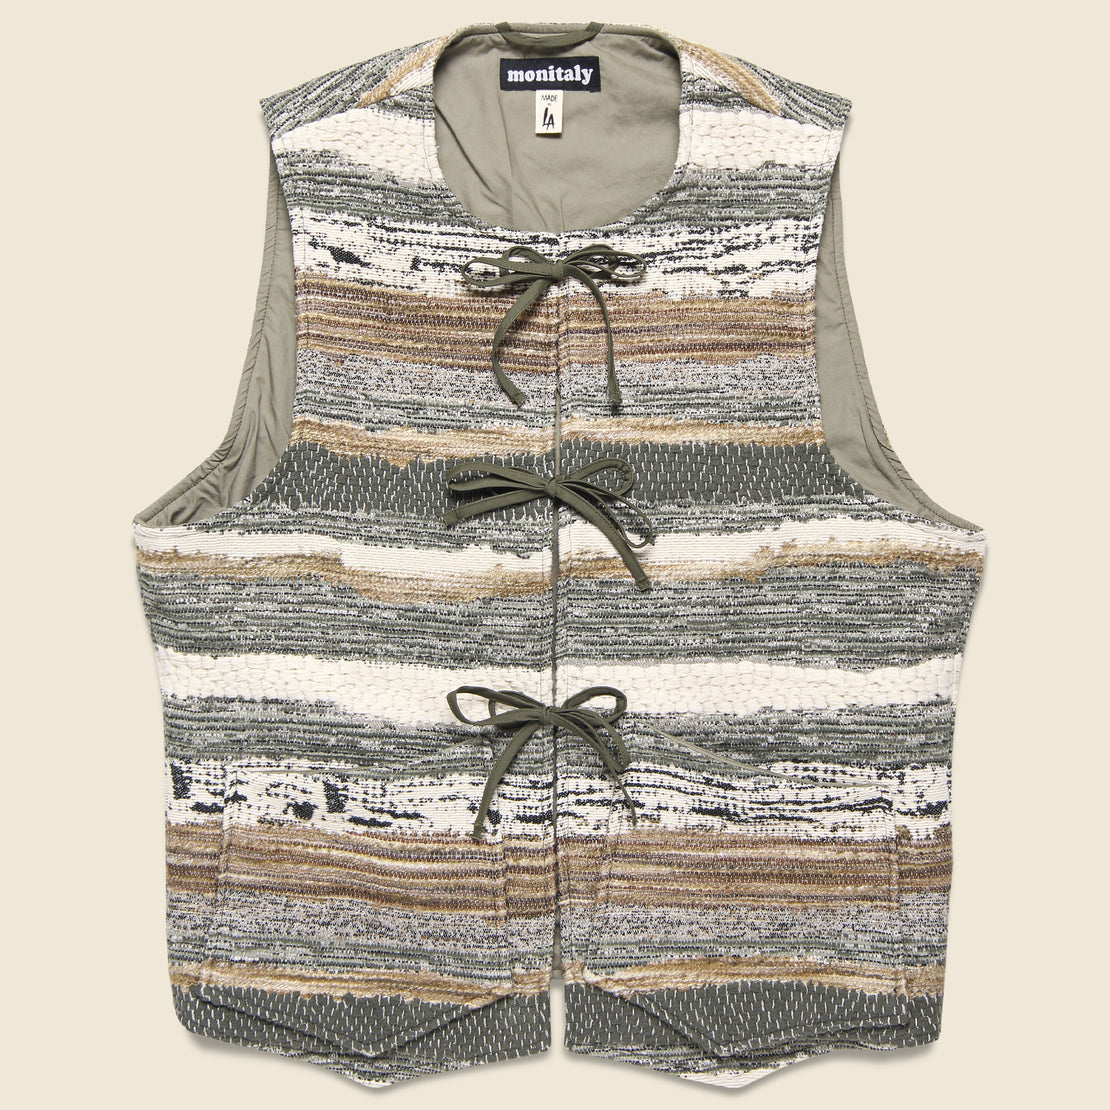 Monitaly Cincho Vest - Hand Crafter Cindy Soft Made